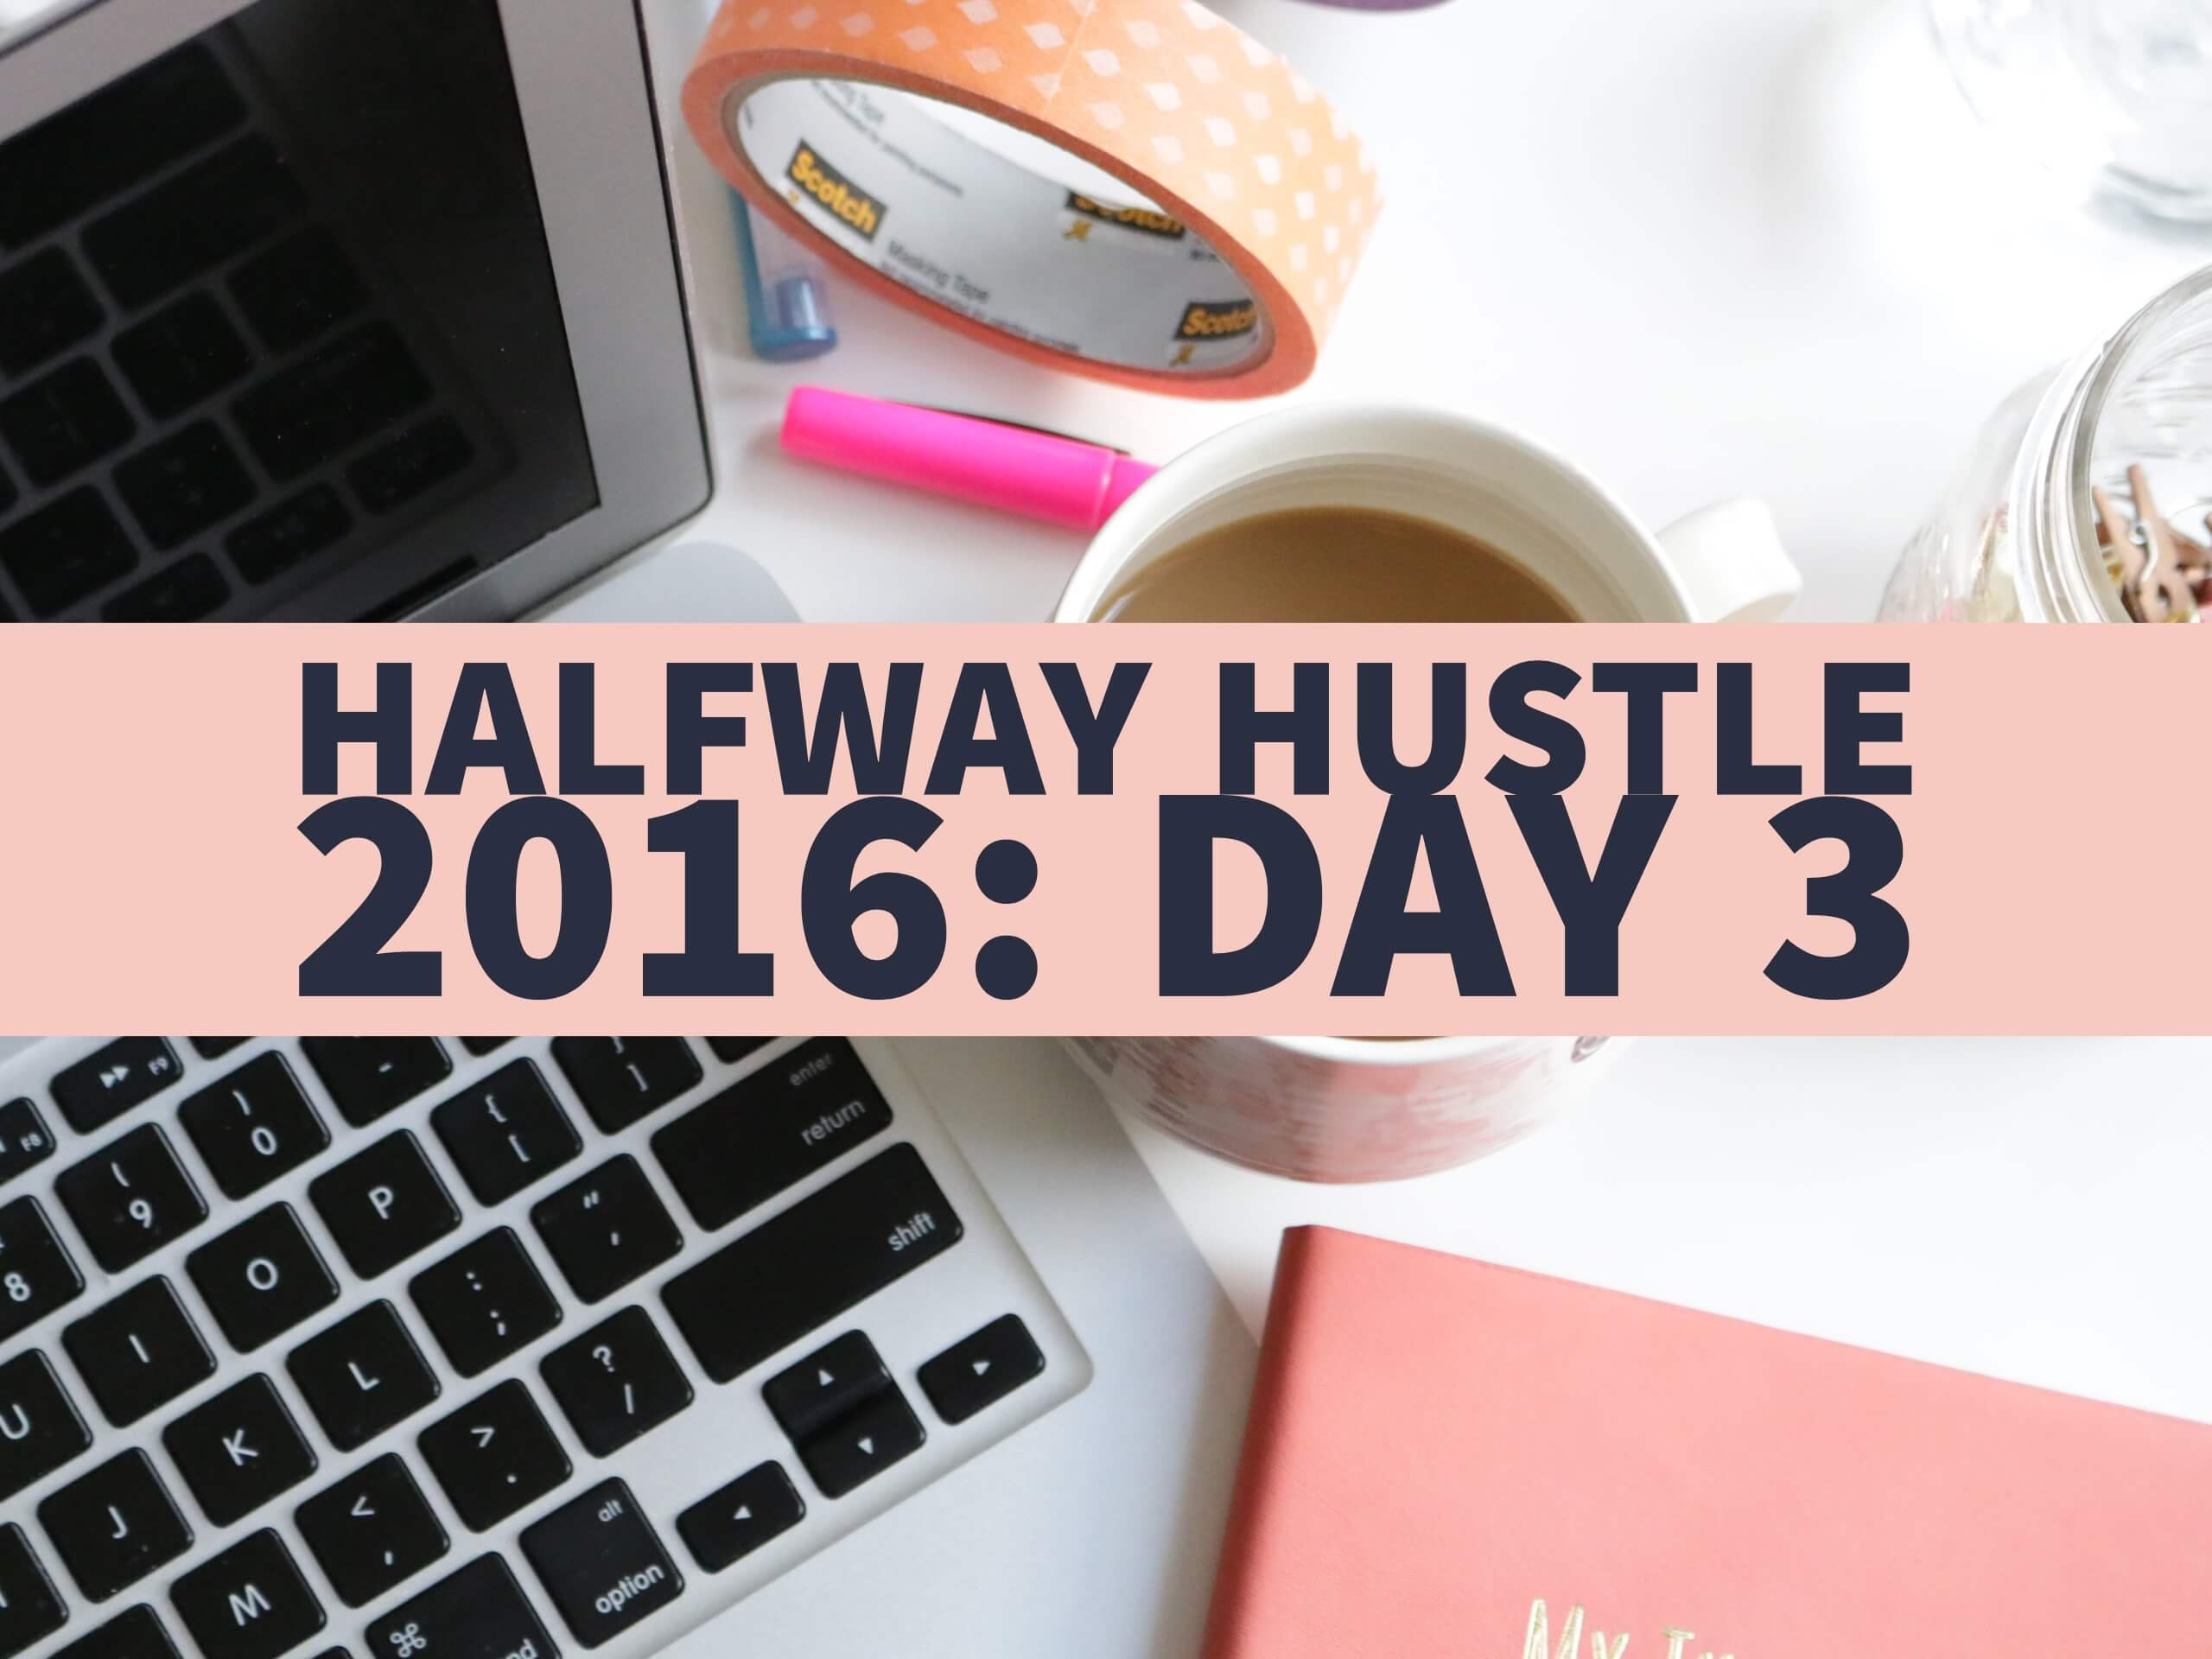 Halfway Hustle 2016 Day 3: Create Your Action Plan